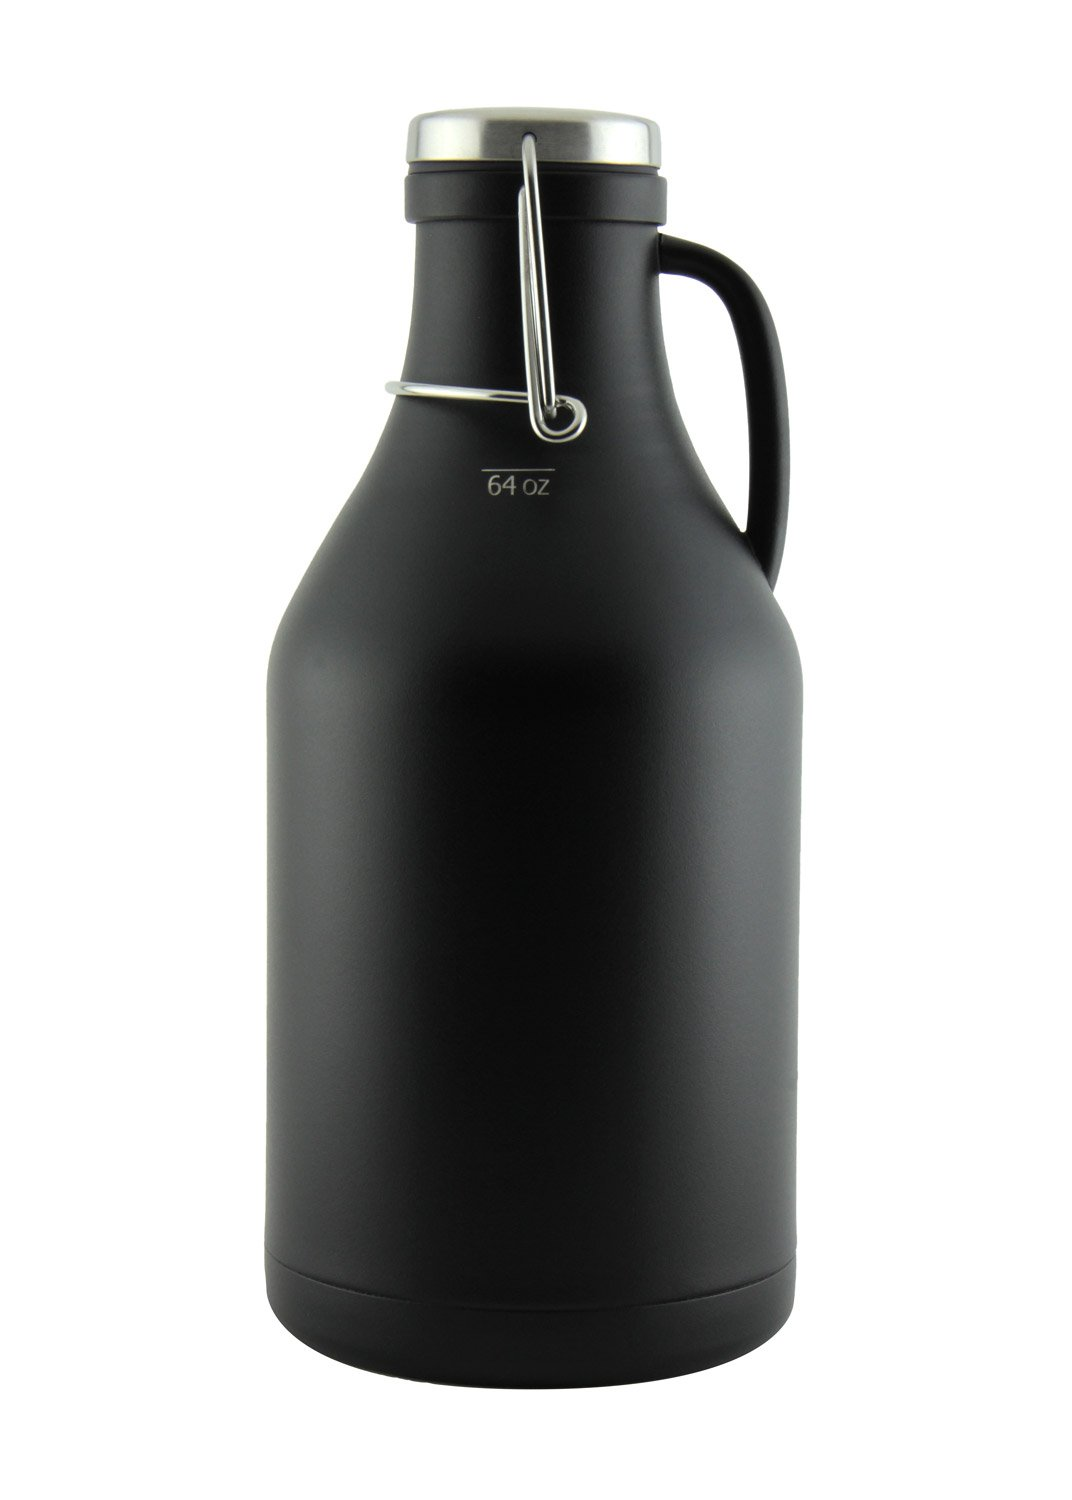 The Grizzly - 64 oz Double Wall Stainless Steel Flip Top Beer Growler - Black